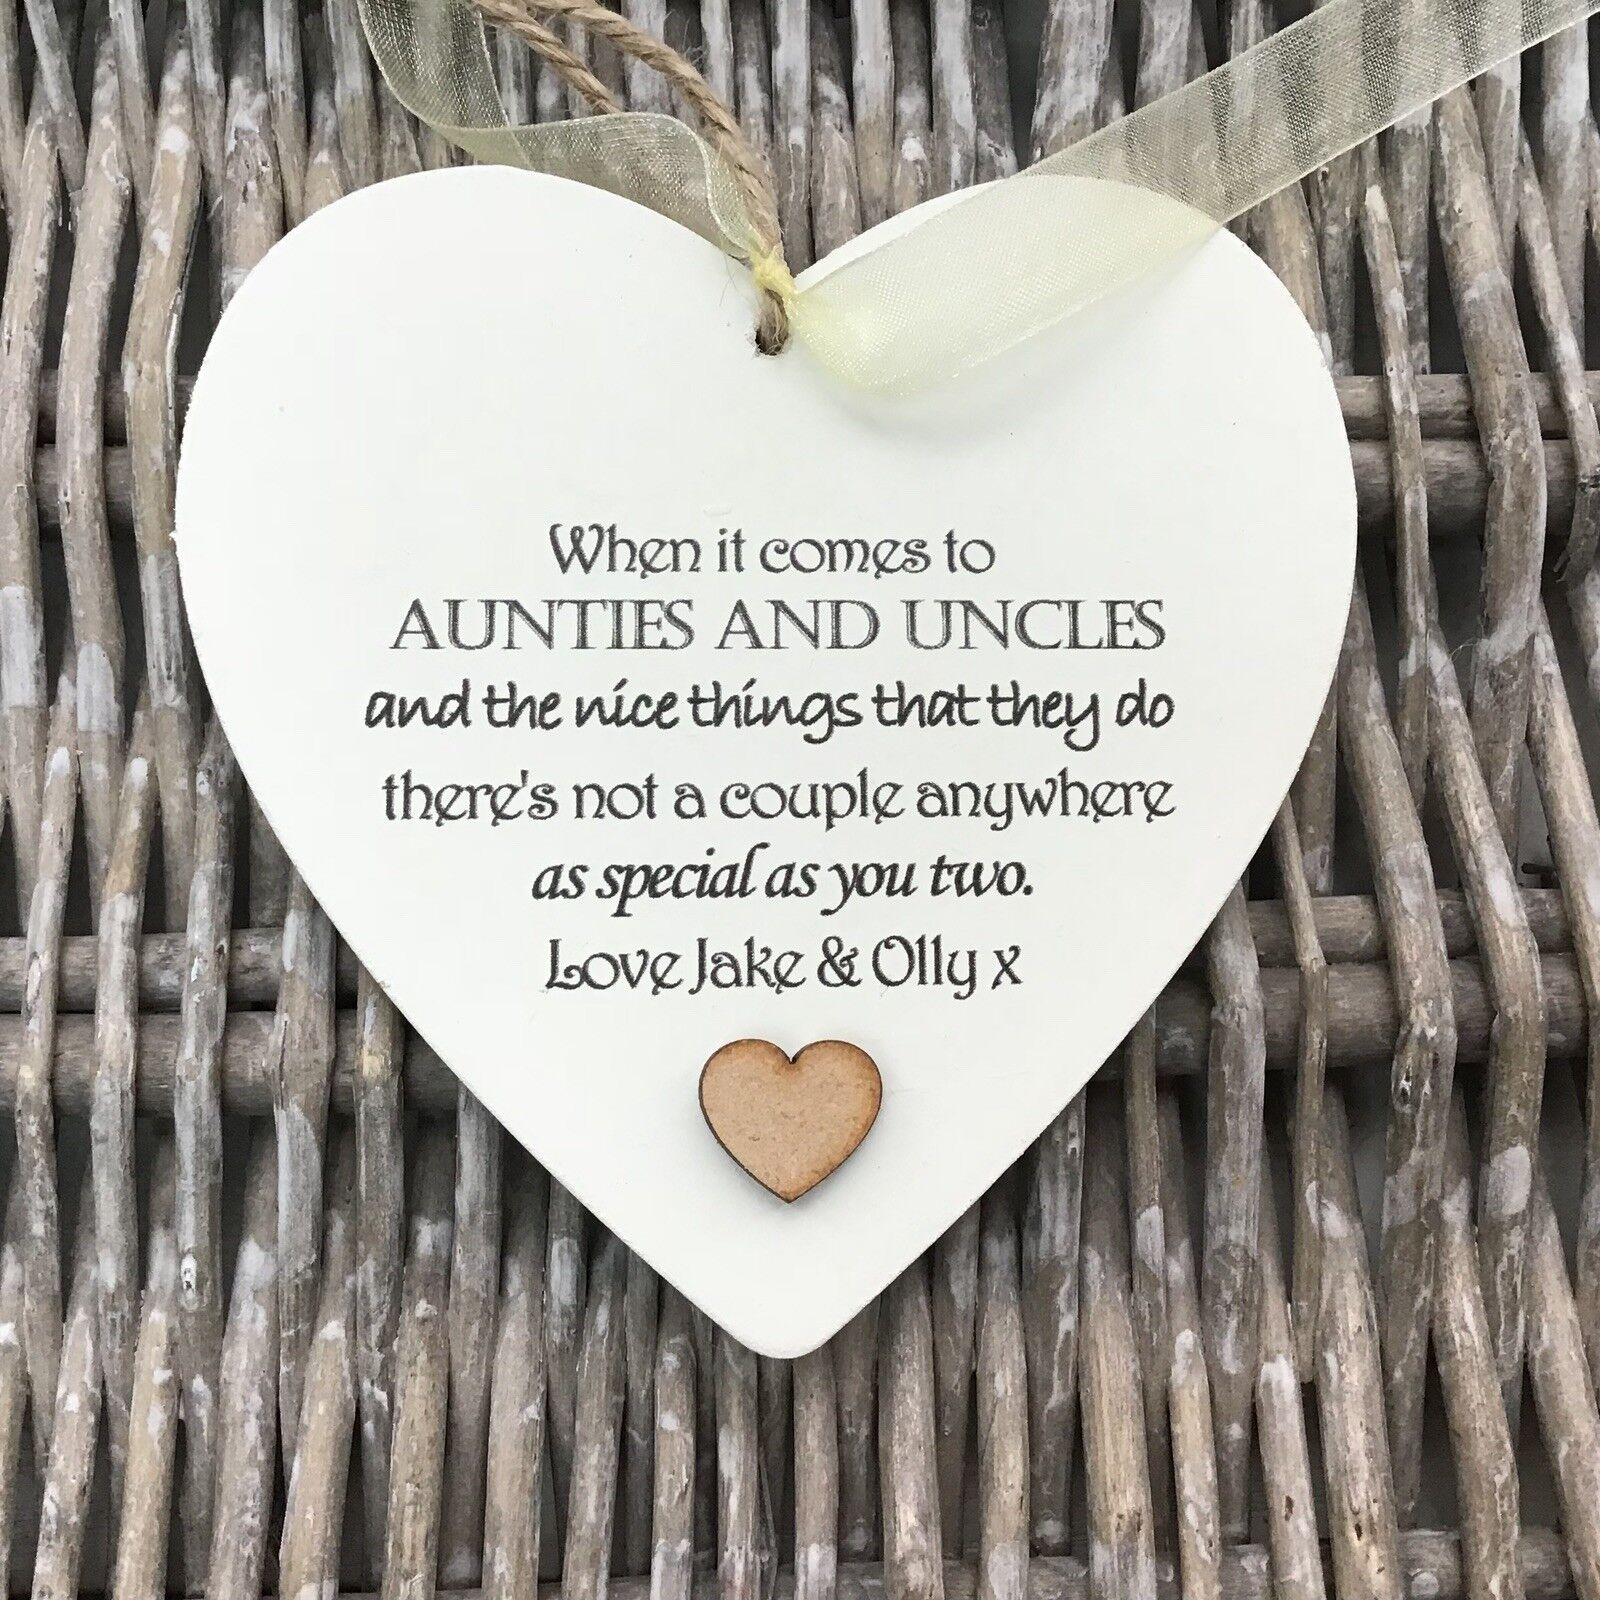 Shabby personalised Gift Chic Heart Plaque Special Auntie Uncle Aunty Aunt Gift - 253984749654